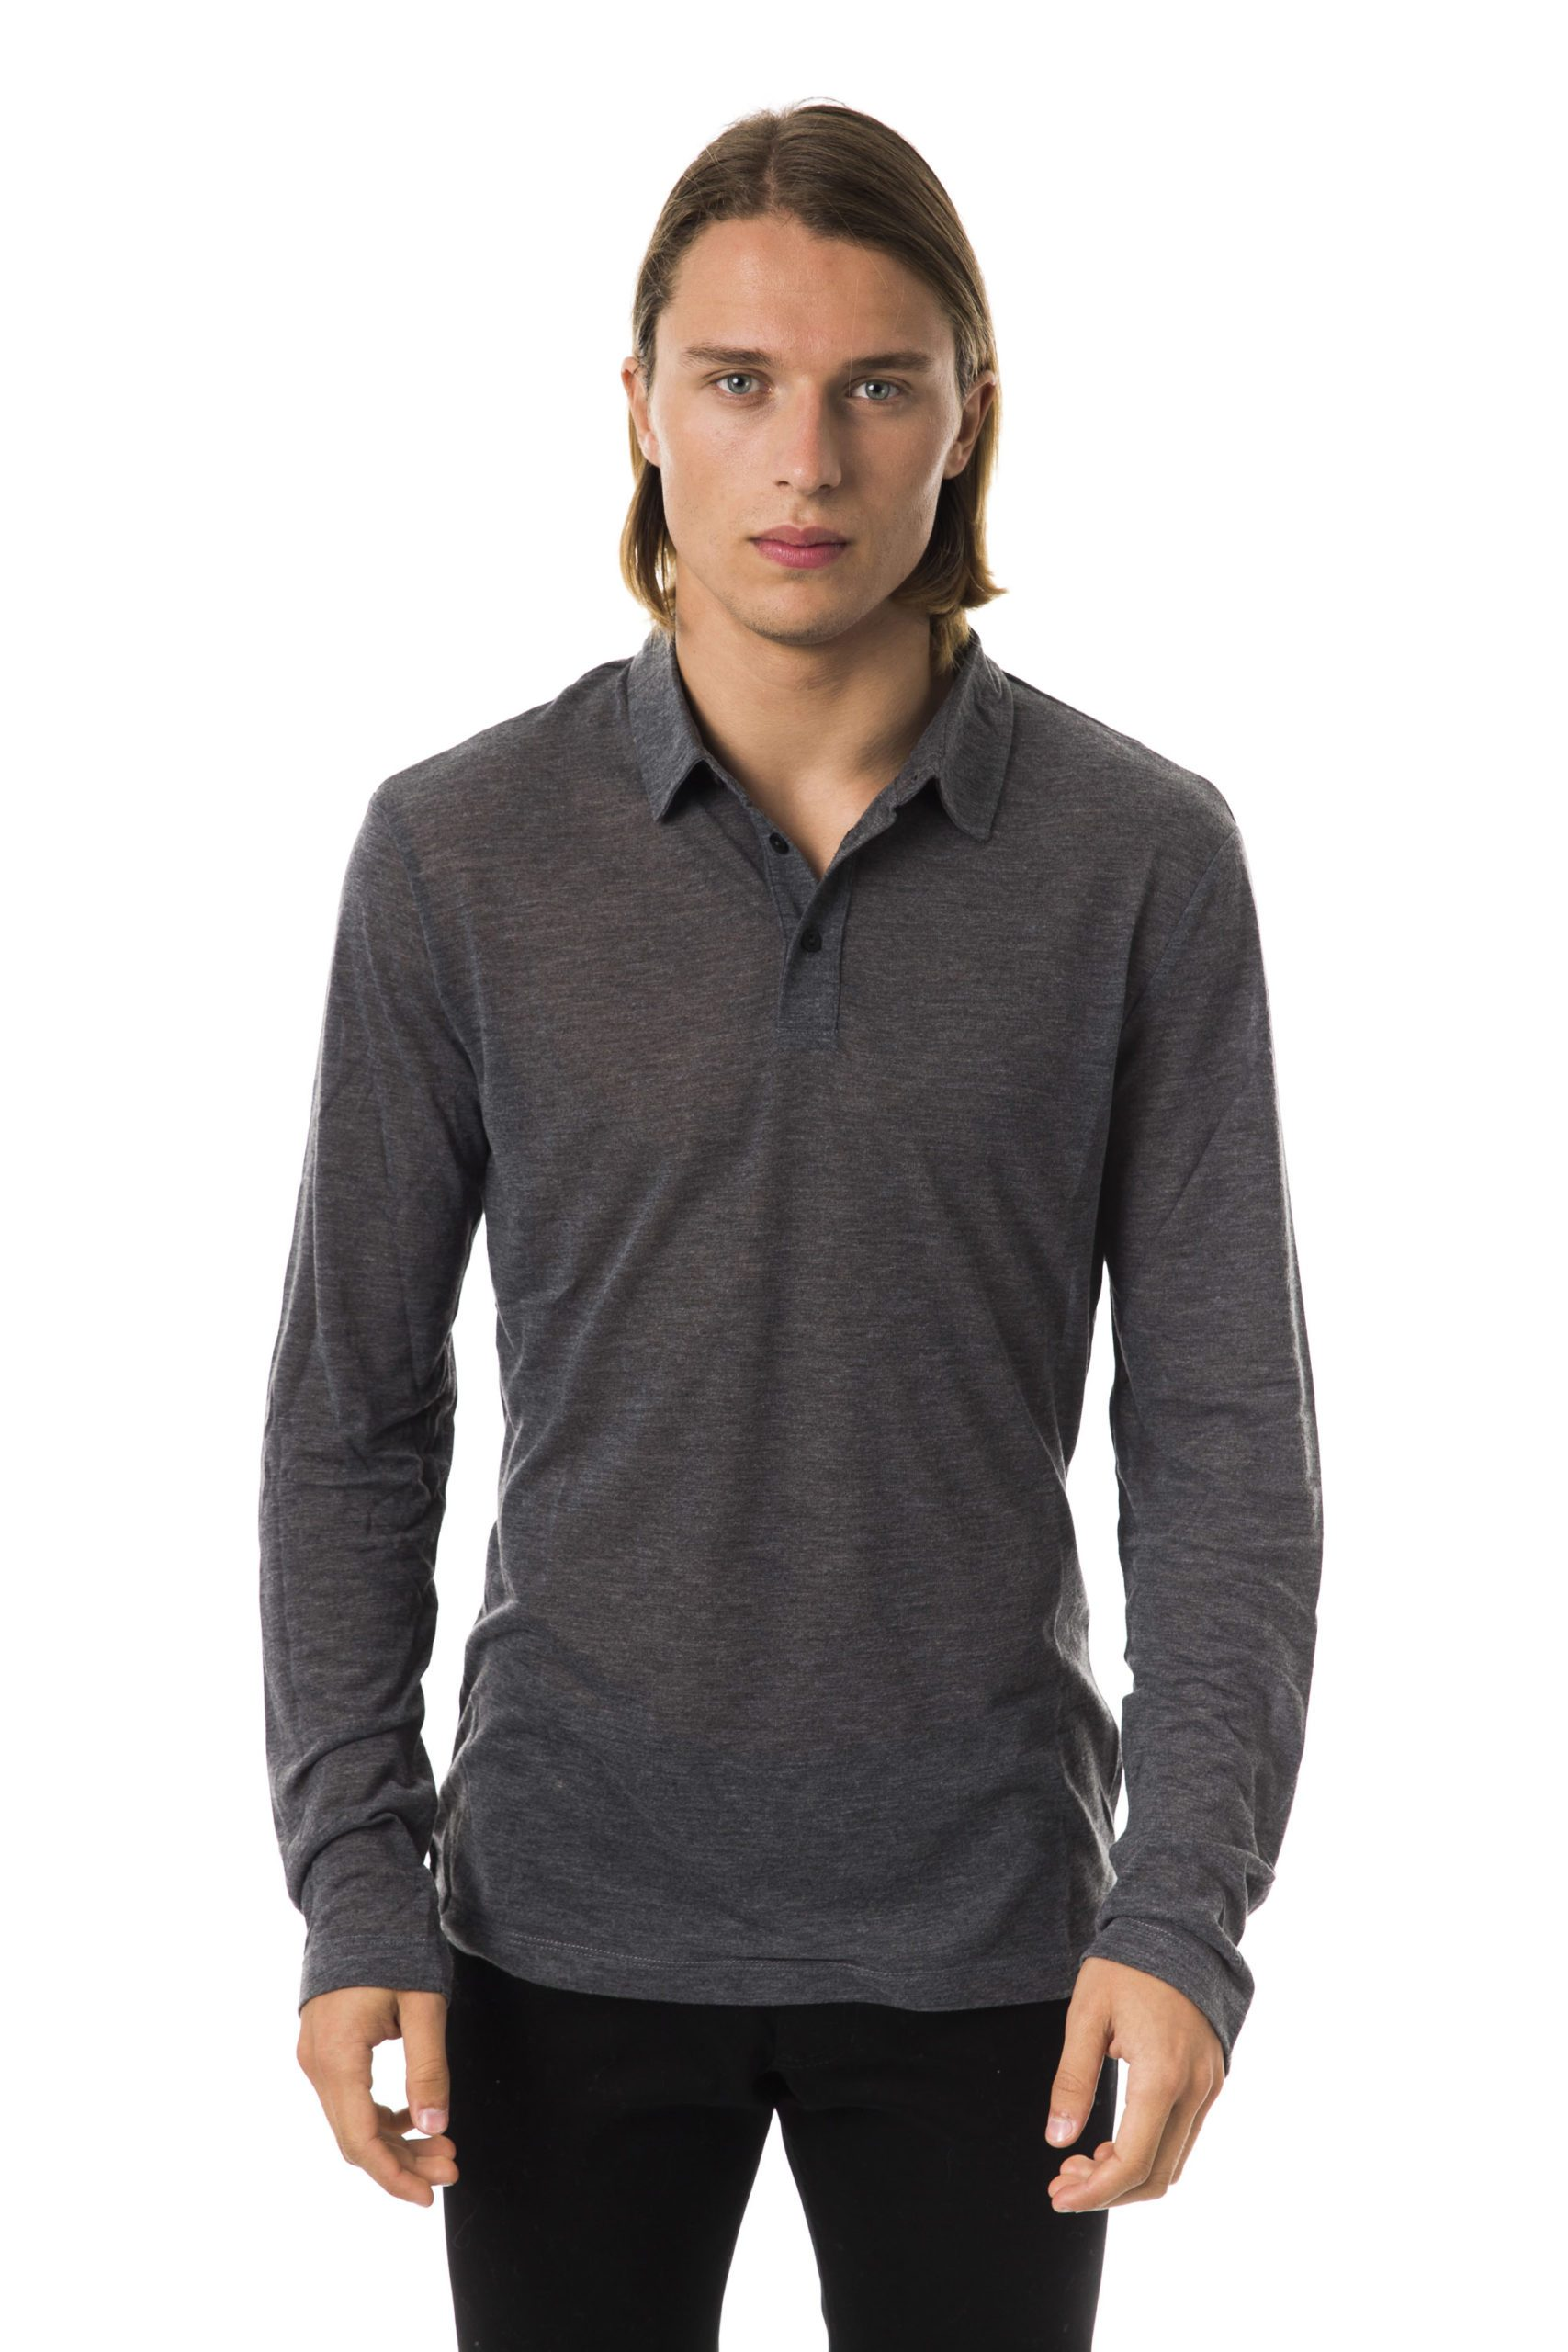 Byblos Men's Polo Shirt Grey BY991942 - S